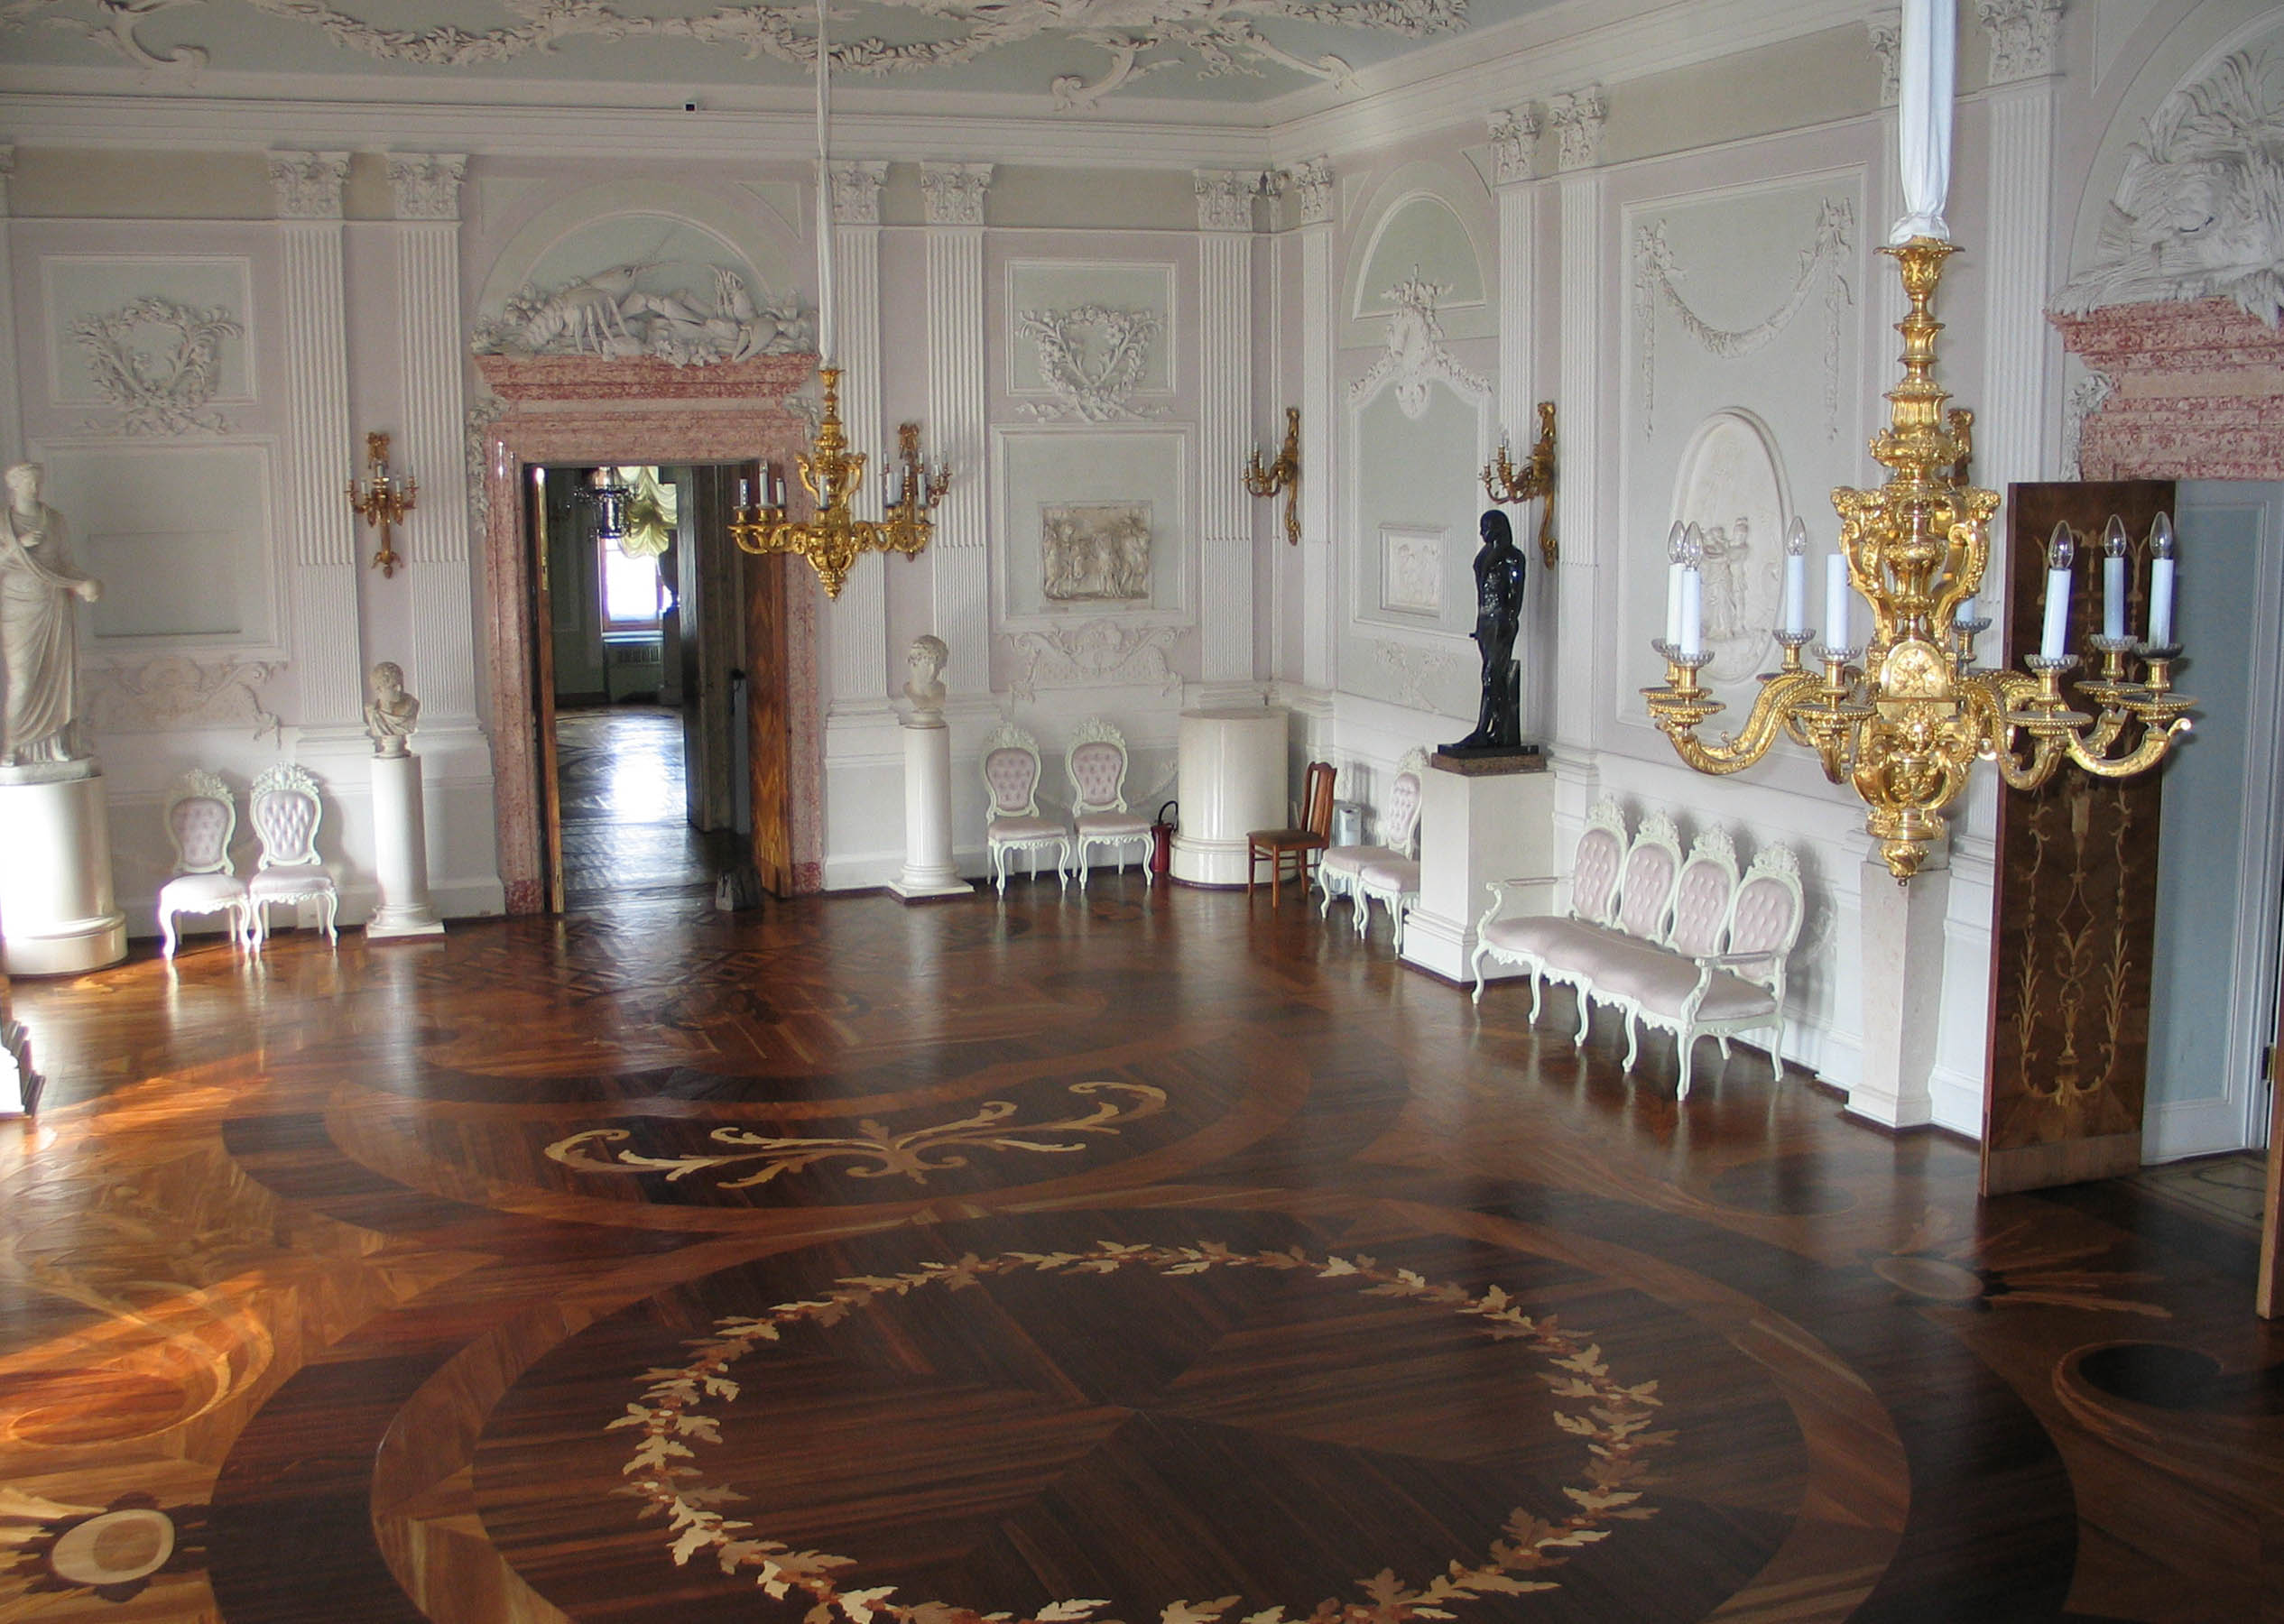 File The White Hall Of The Gatchina Palace Jpg Wikimedia